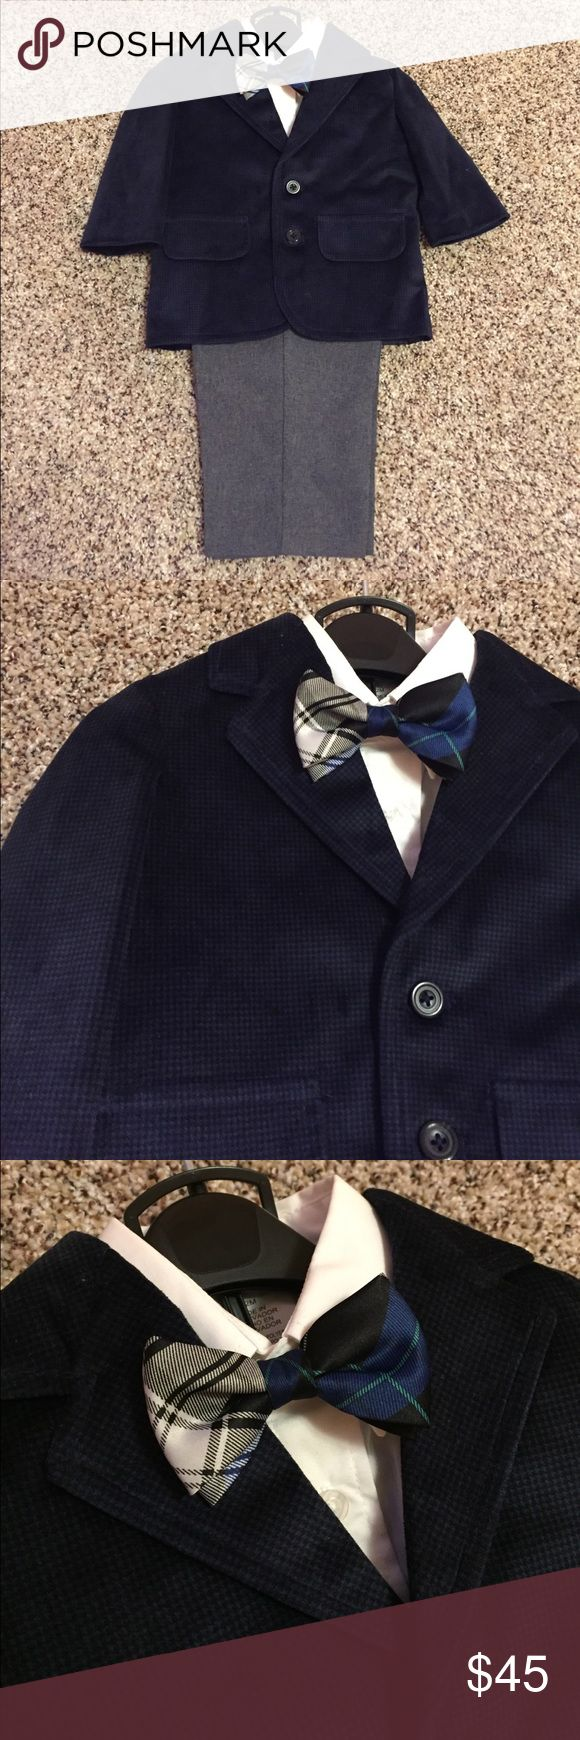 Baby boy outfit New! Very cute 4 piece set. Velour jacket Nautica Matching Sets